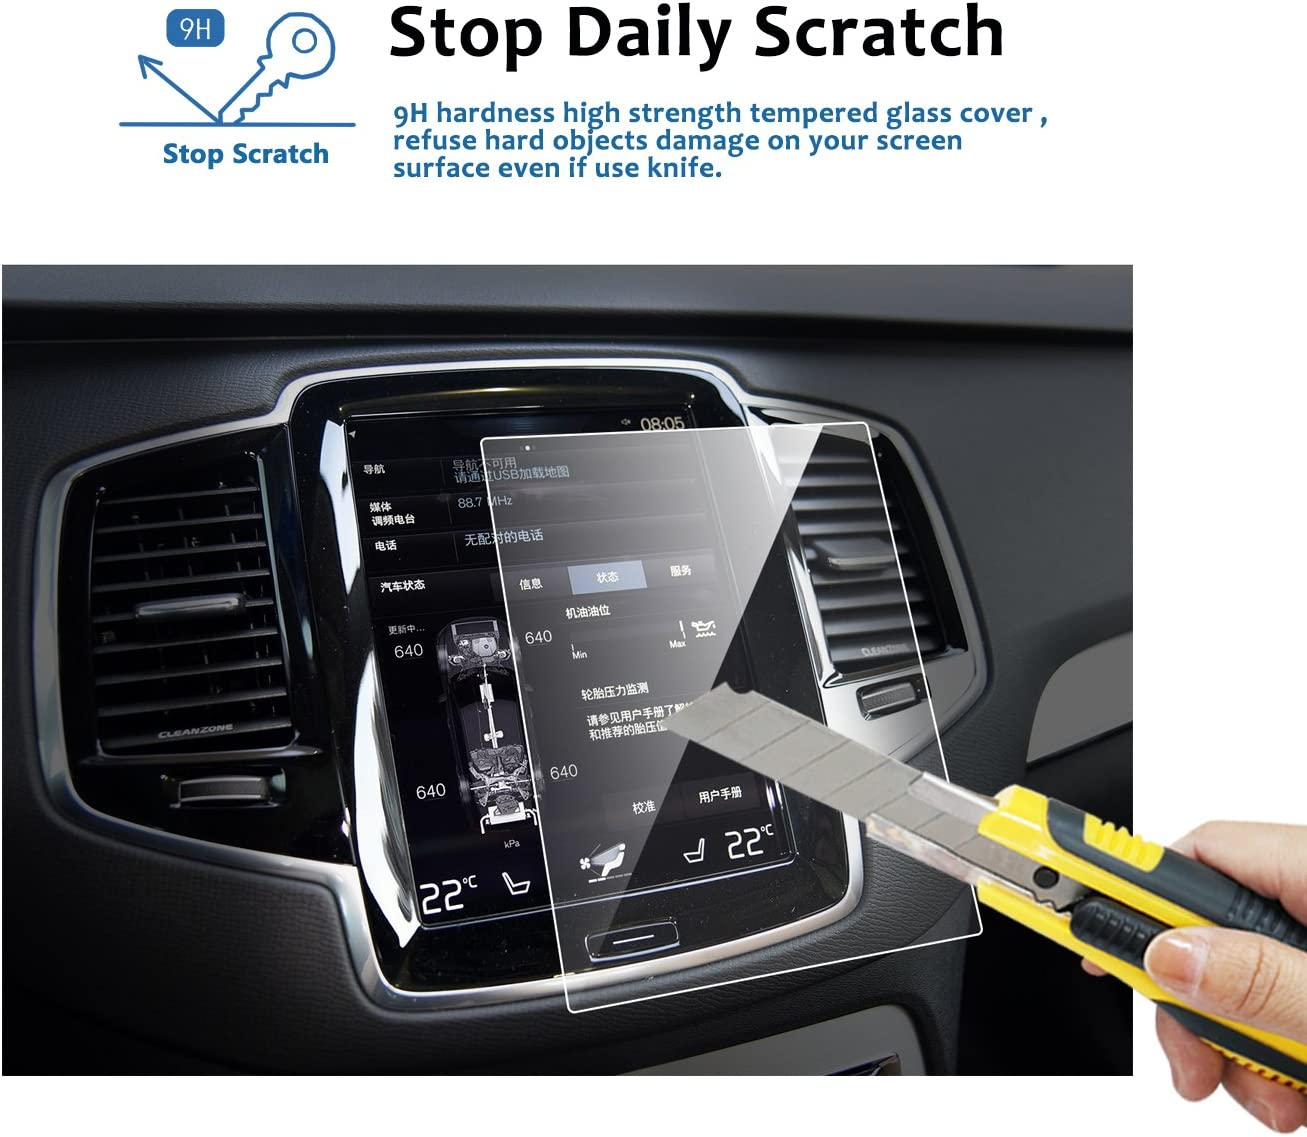 Car Navigation + Air Conditioning Display Screen Protector Against Scratch High Clarity LFOTPP 2016 2017 Volvo V90 XC90 2PCS Tempered Glass Center Touch Screen Protector